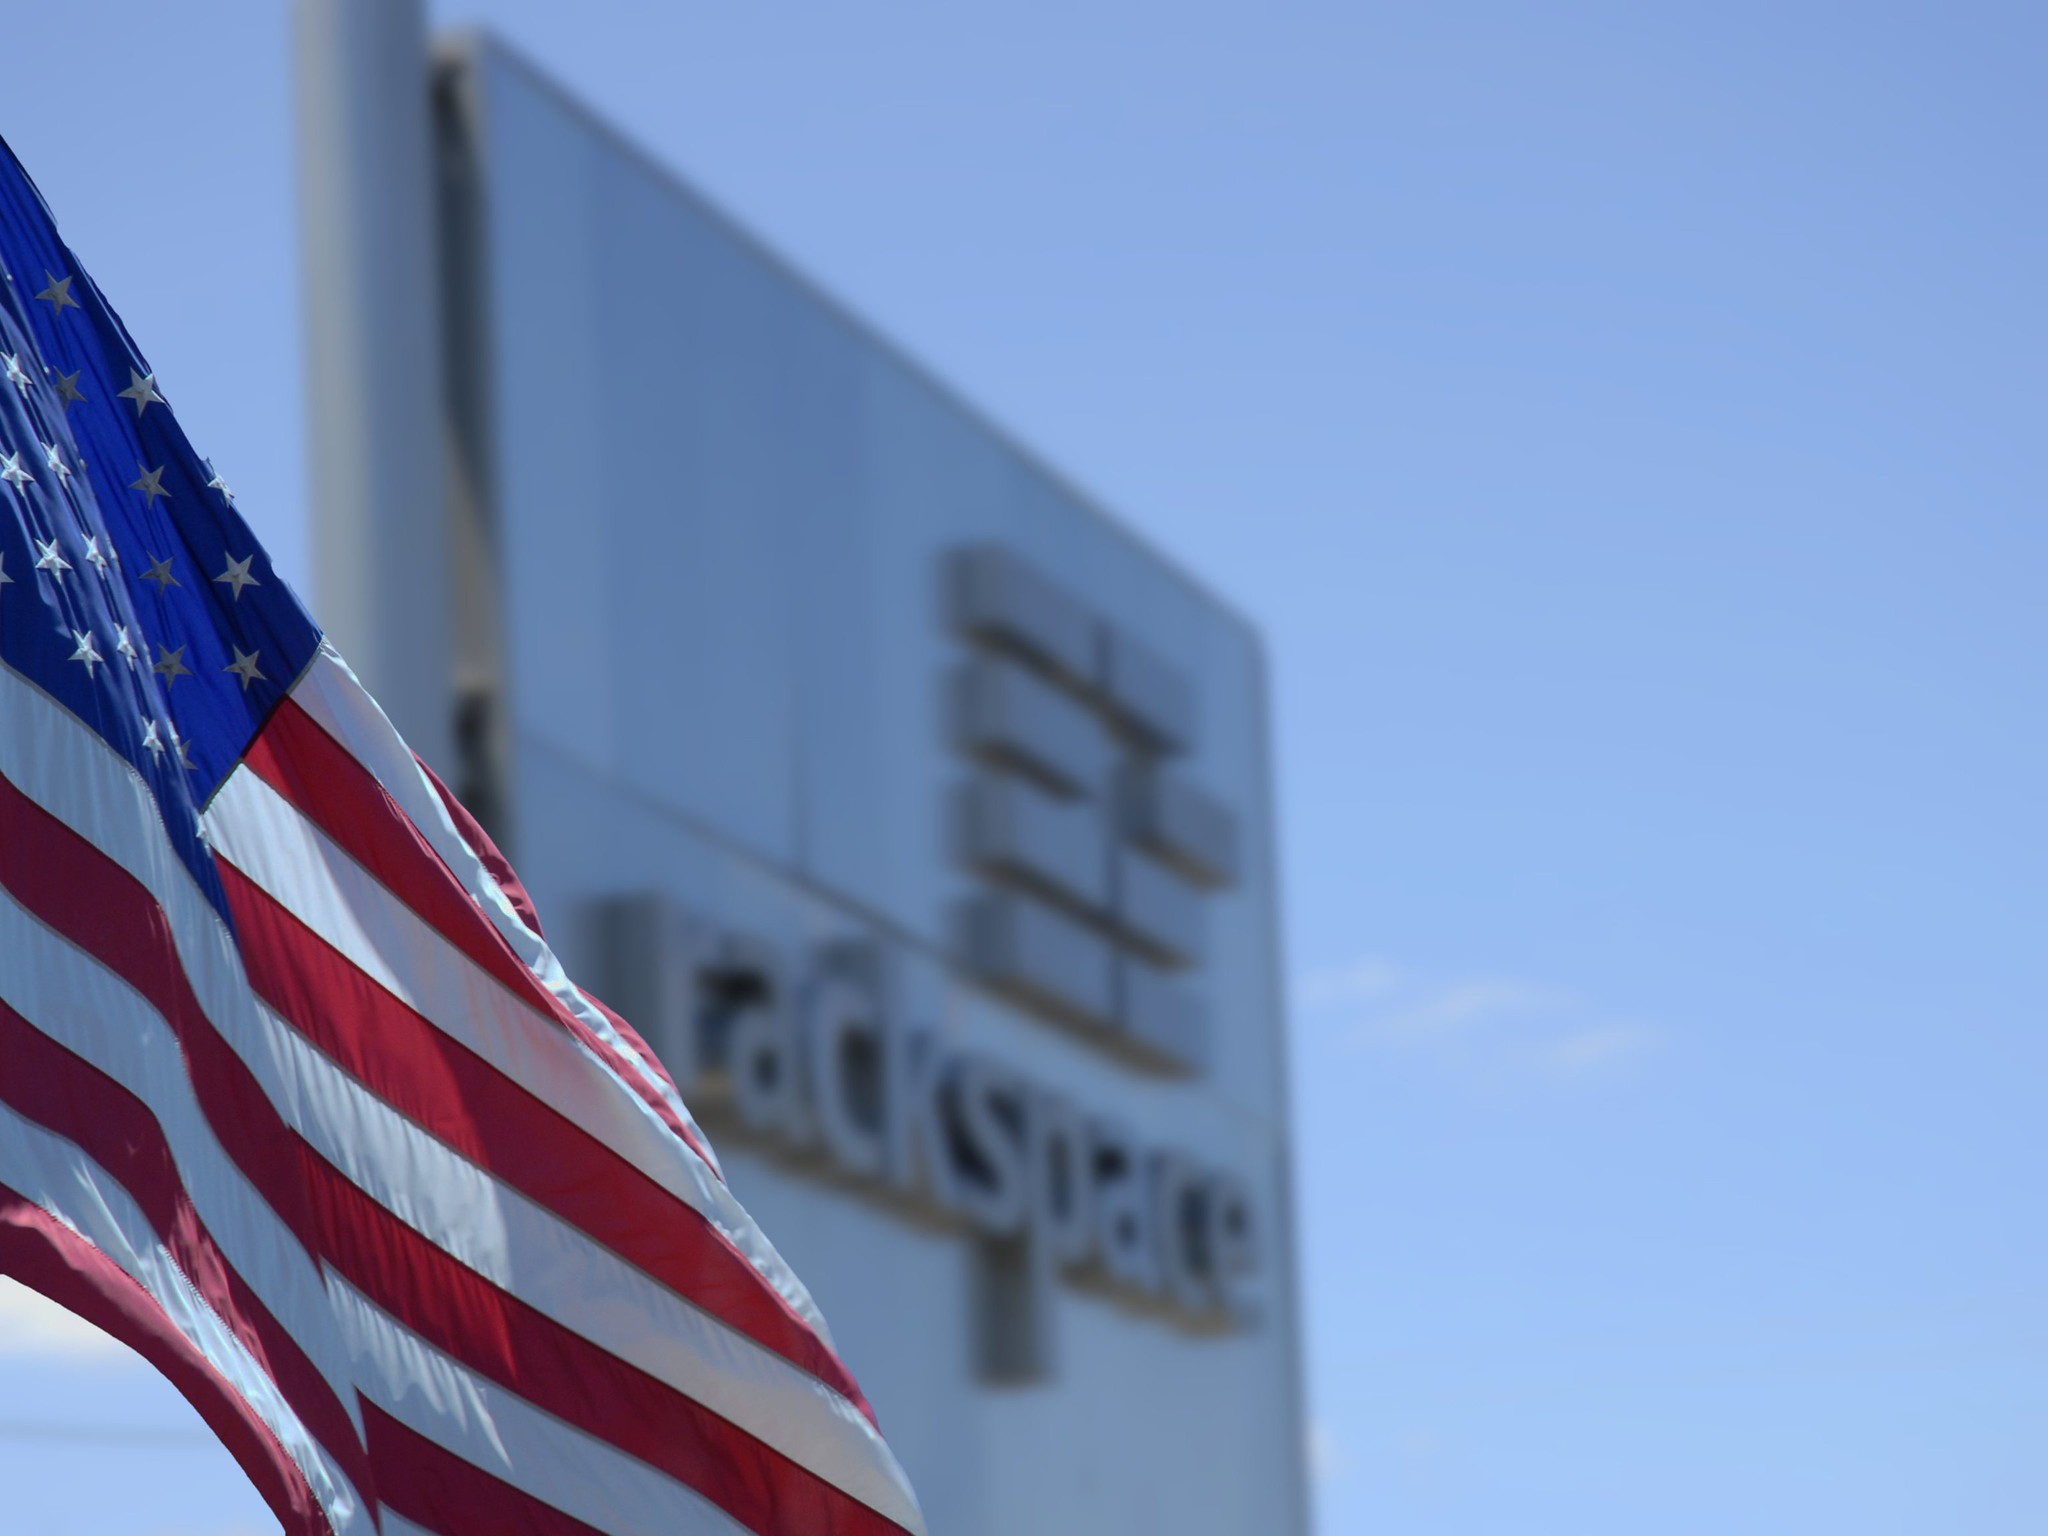 IPO flop: Rackspace stock loses 20% on first day of trading - SiliconANGLE